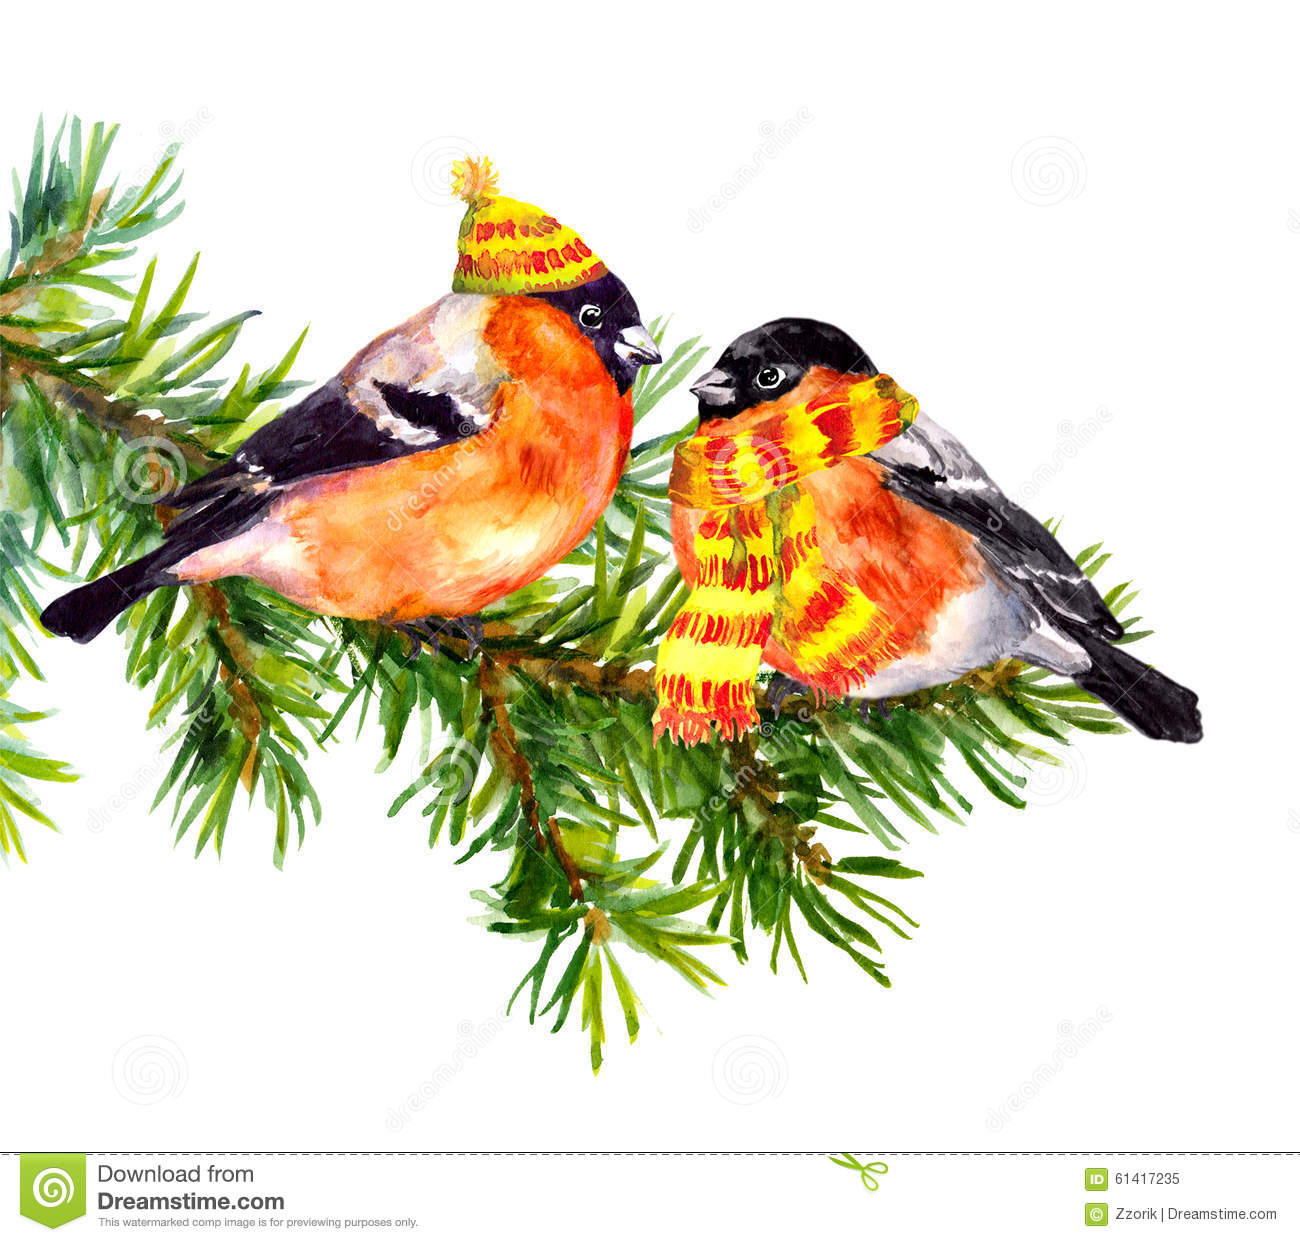 birds in winter clothes hat and scarf on pine xmas tree